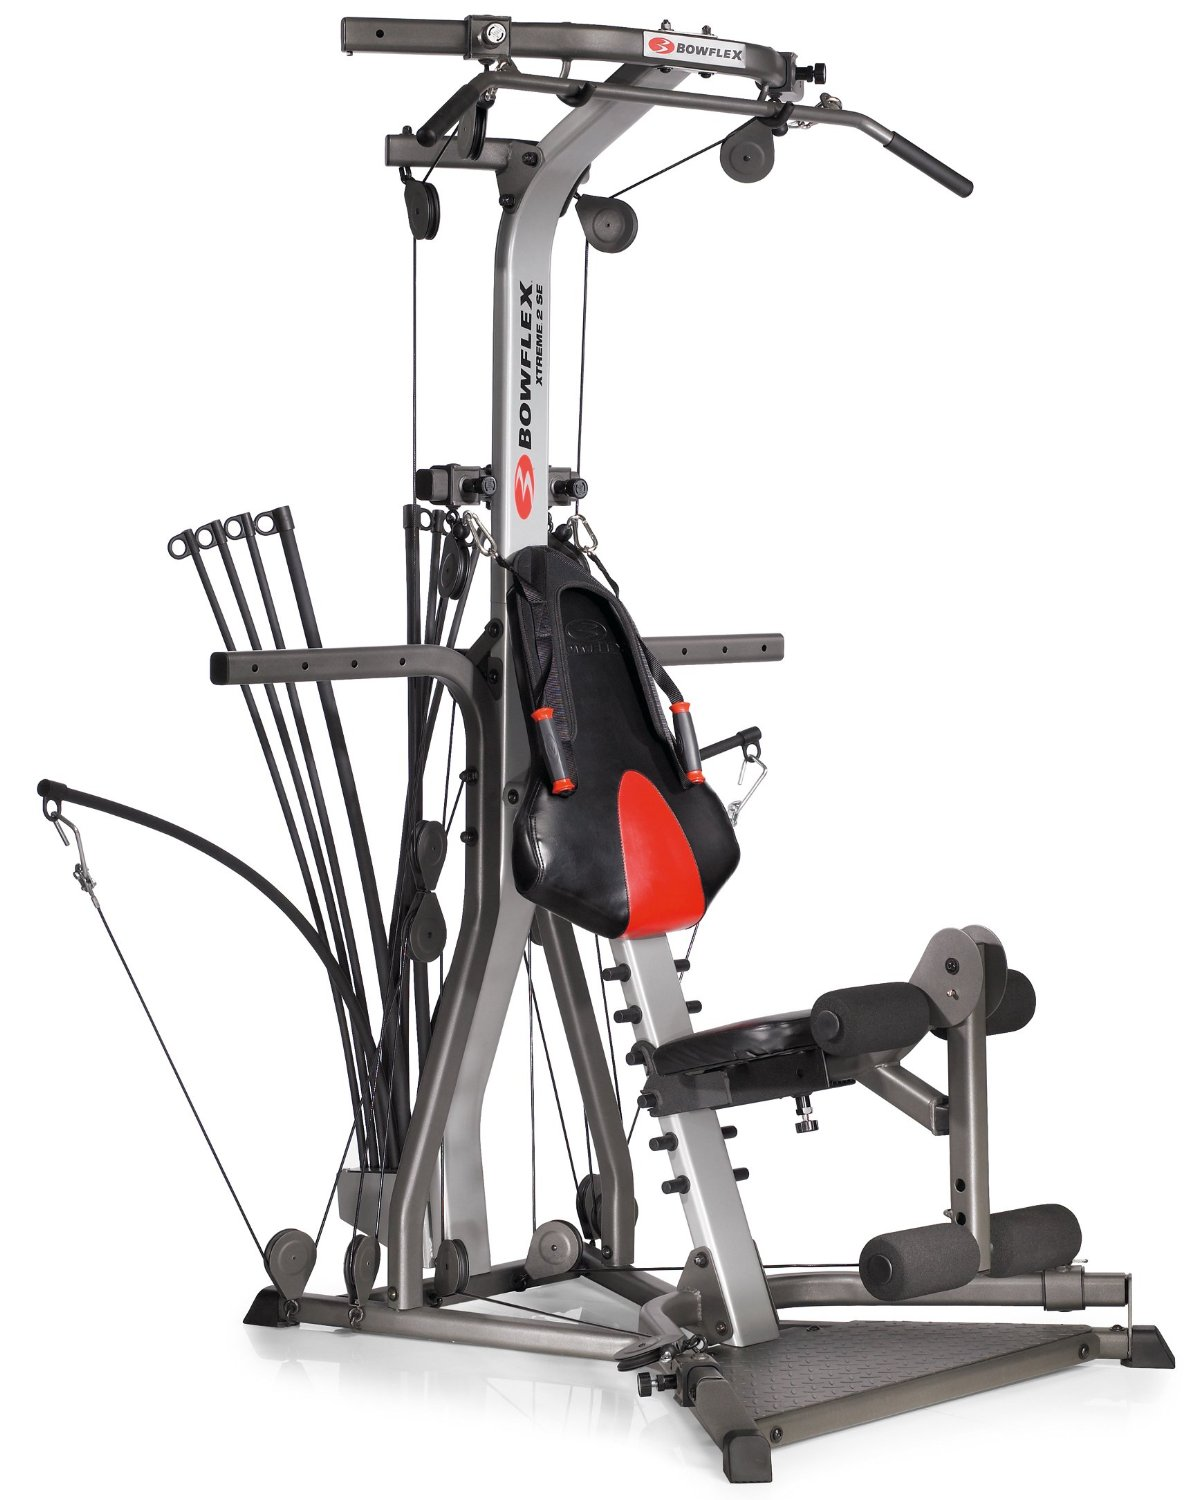 Bowflex Xtreme 2 SE Home Gym Review  wxfitness.com